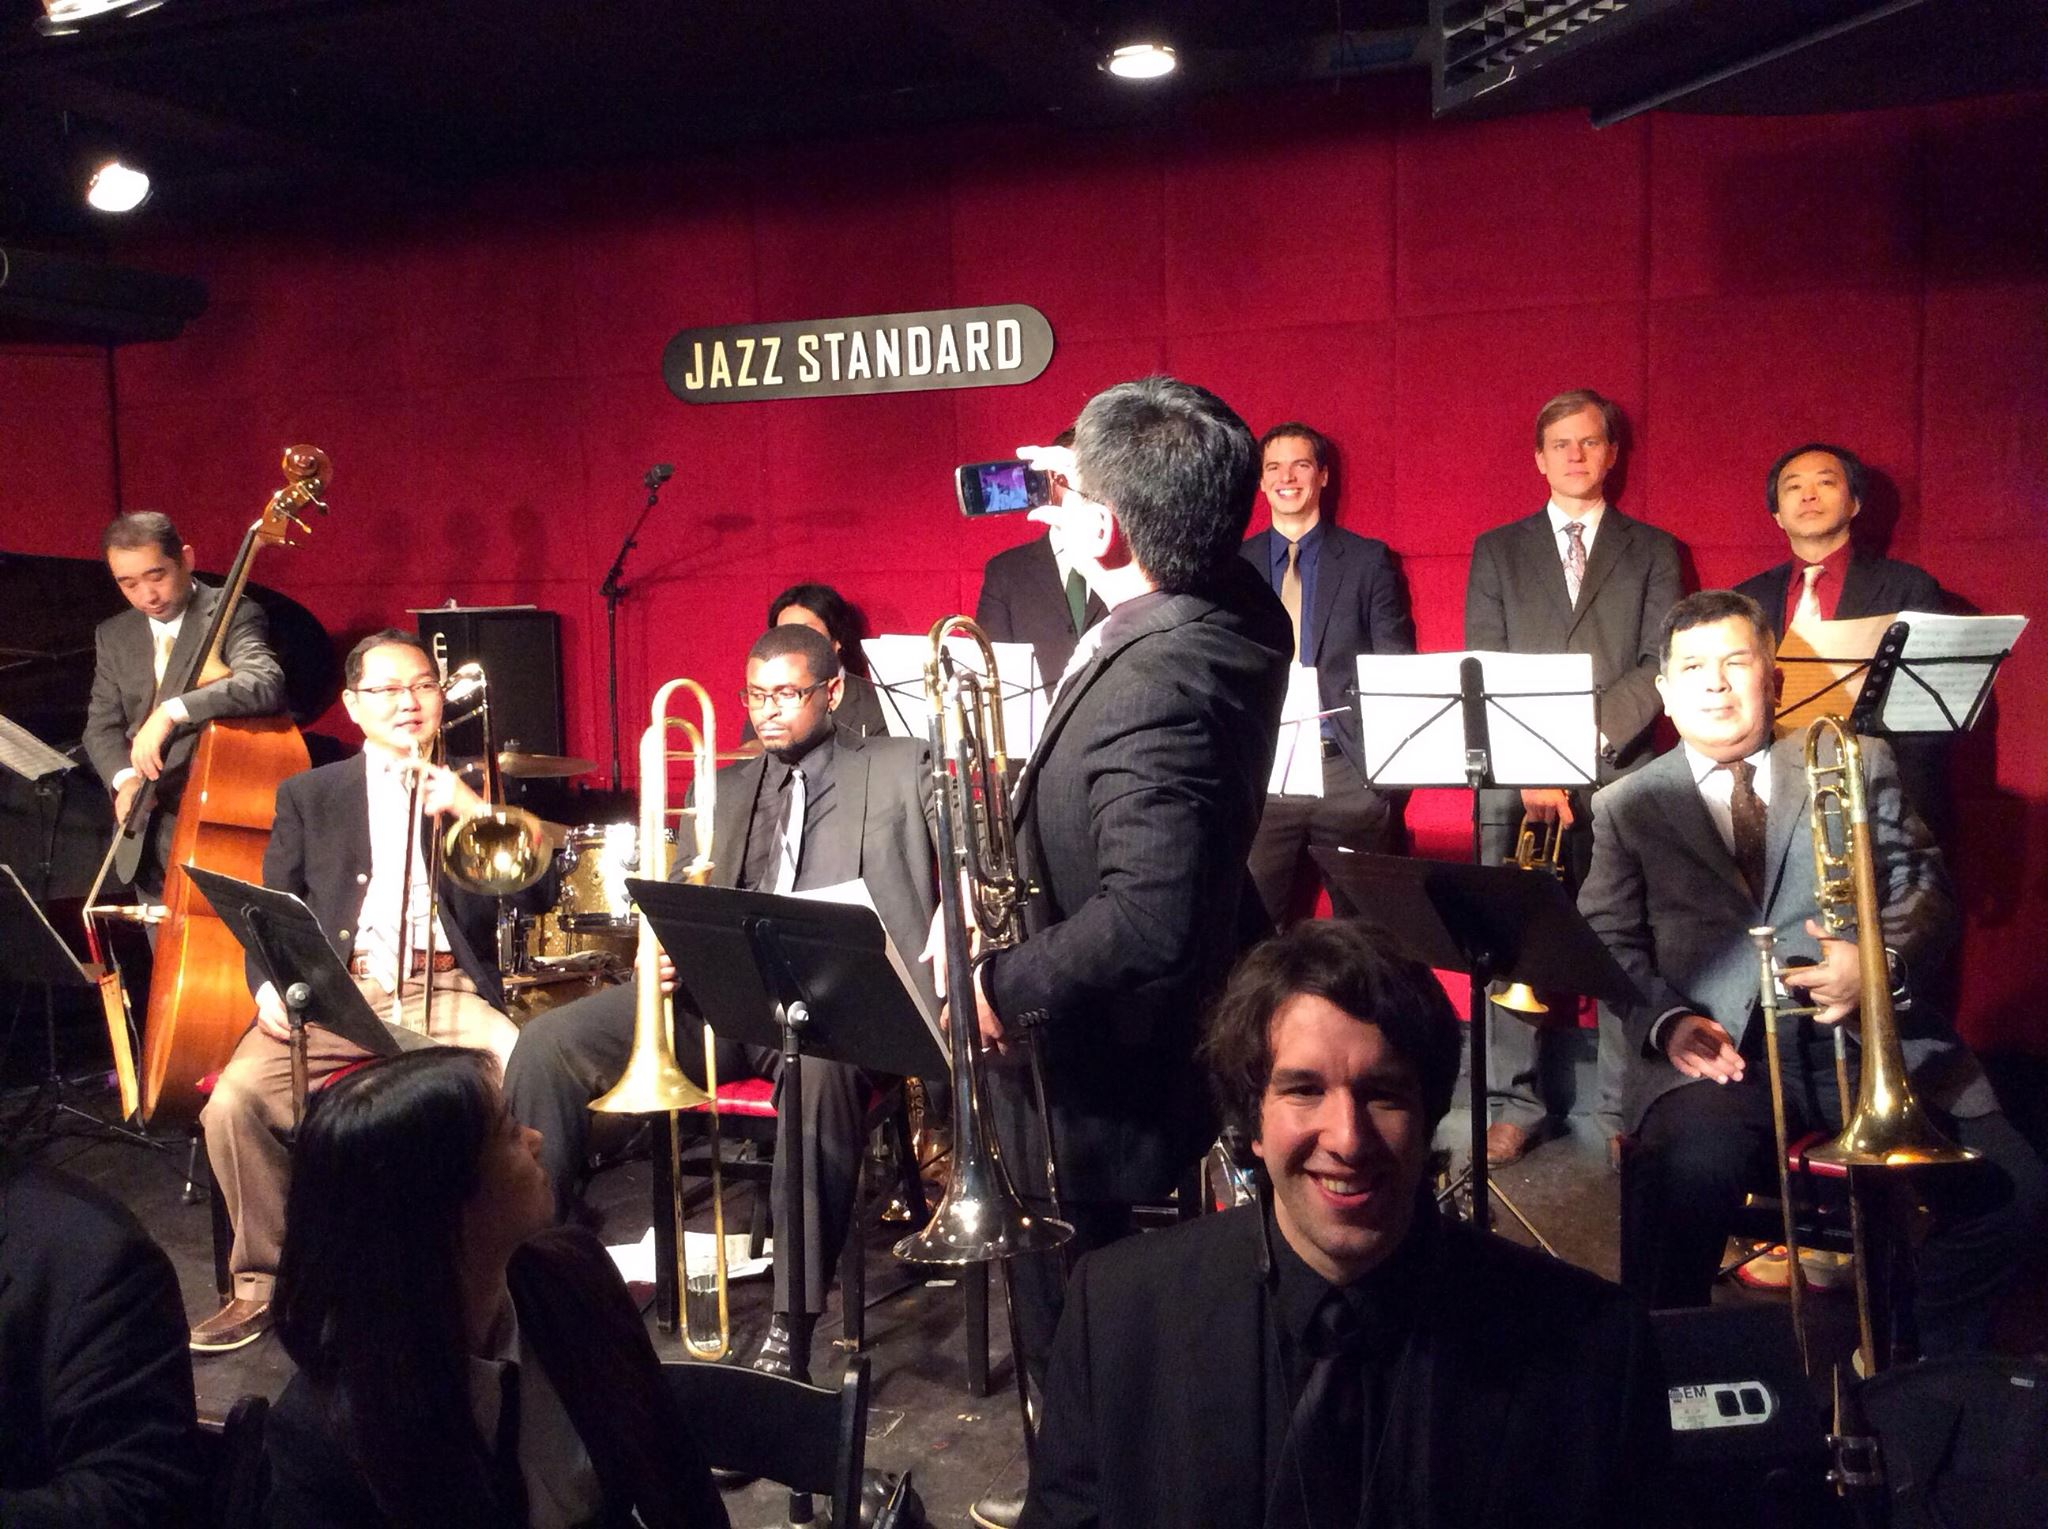 At the Jazz Standard with Tokyo Swings Big Band.